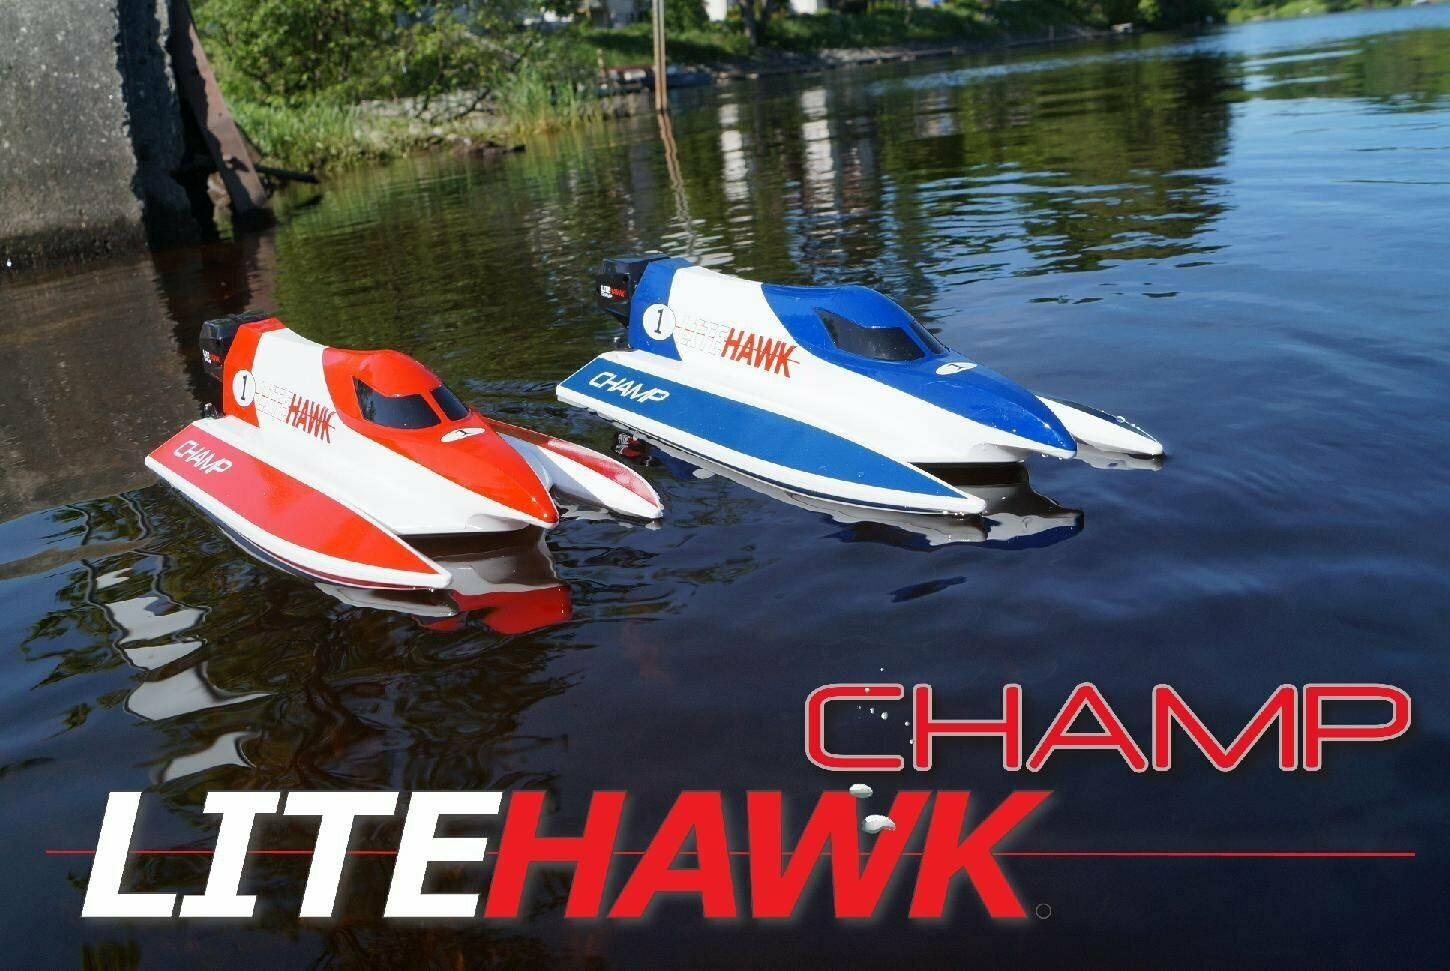 LiteHawk Remote Control Champ Watercraft   285-20002 rosso